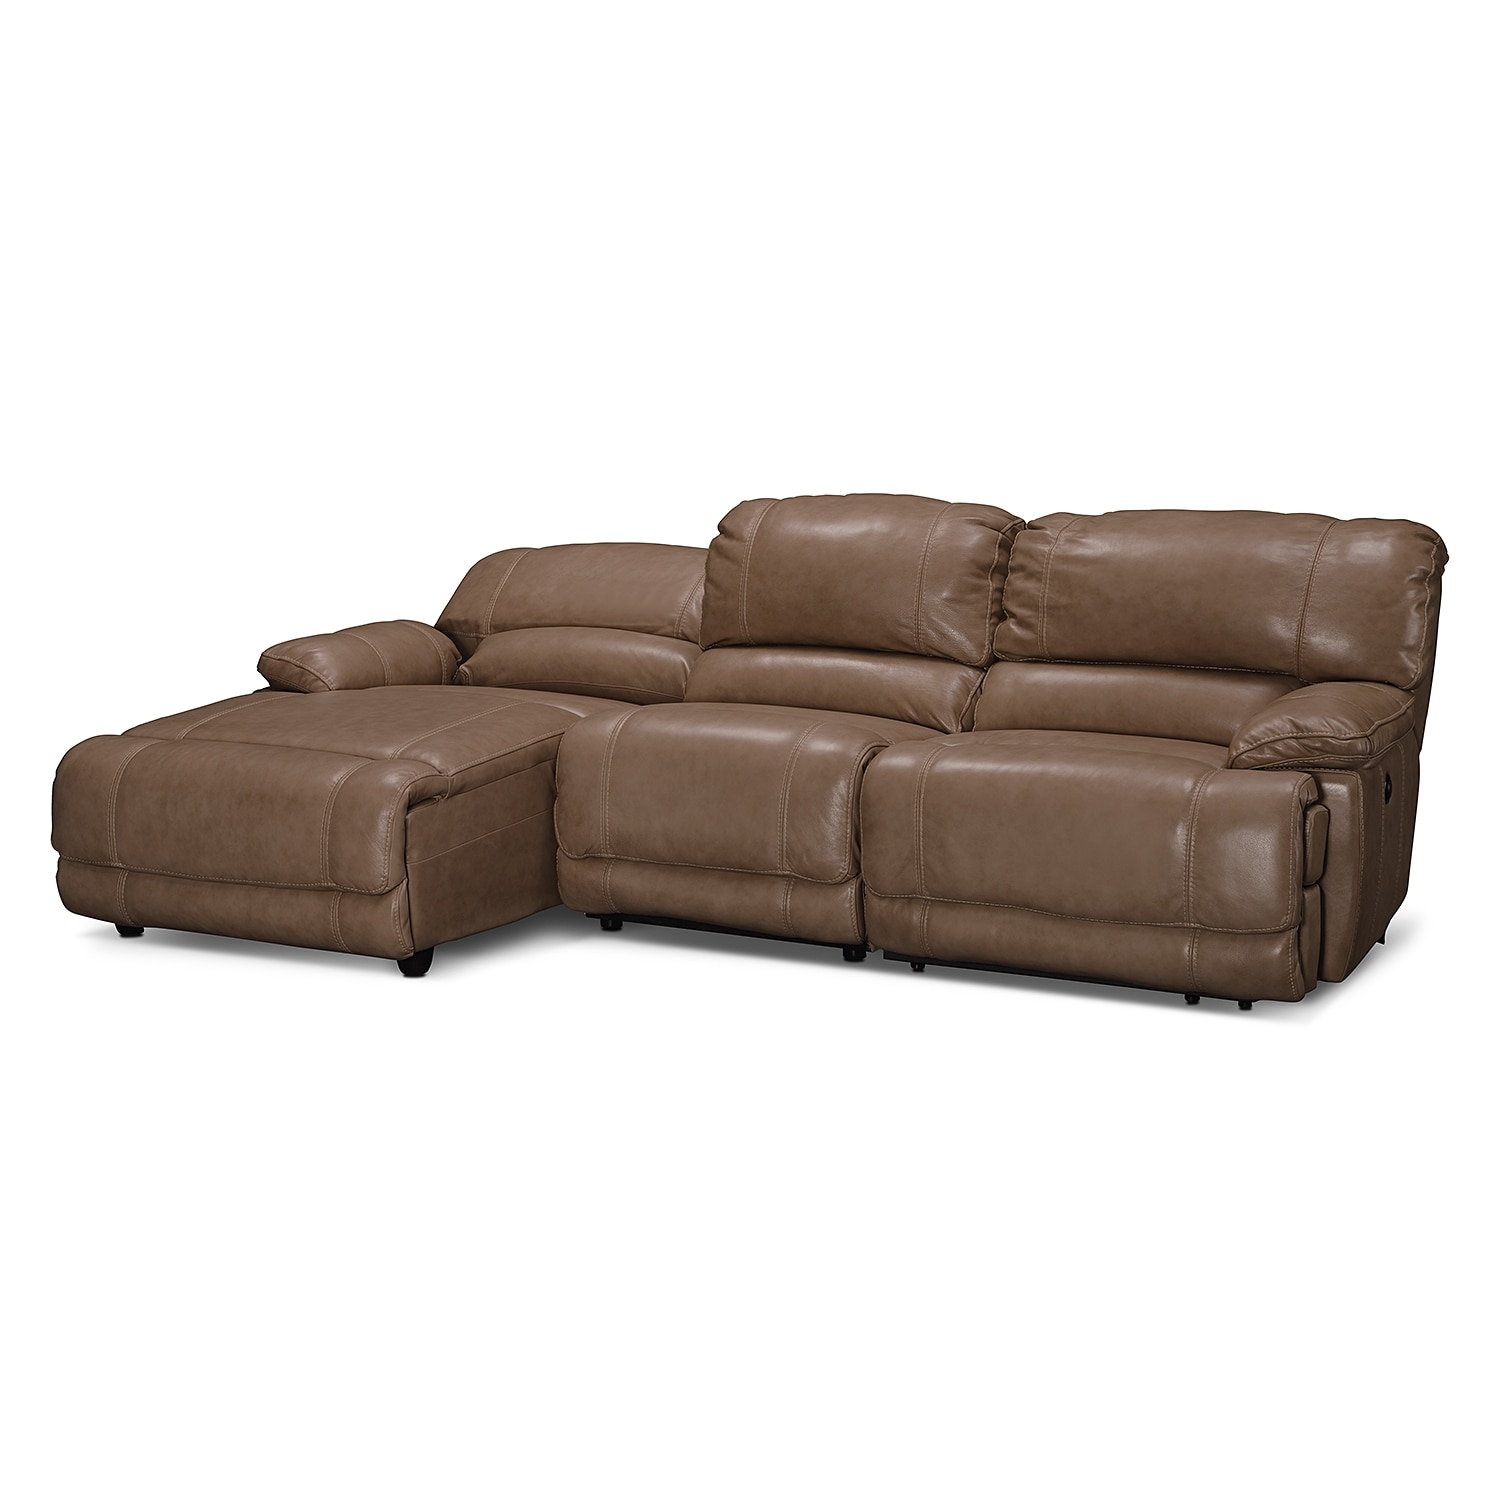 Clinton taupe leather 3 pc power reclining sectional for Brighton taupe 3 piece chaise and sofa set